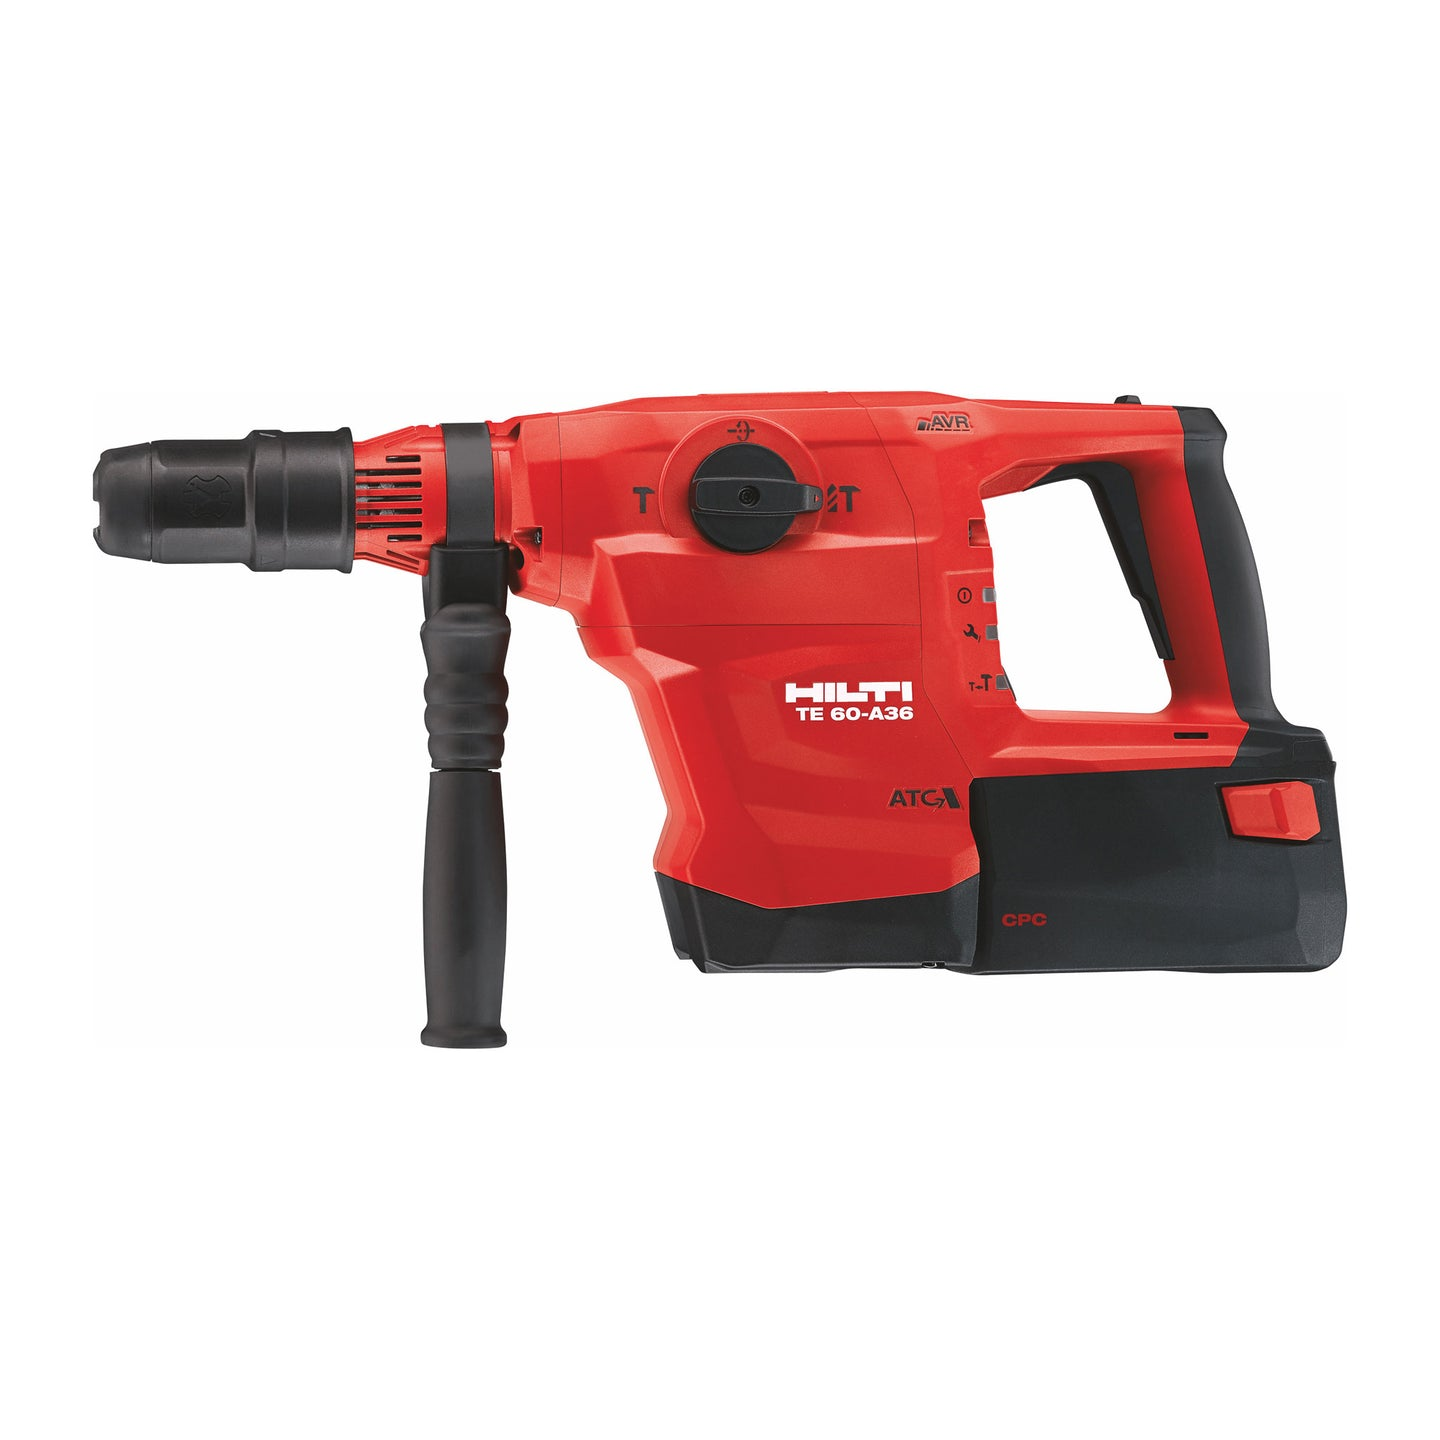 Cordless combihammer - Hilti TE 60-A36